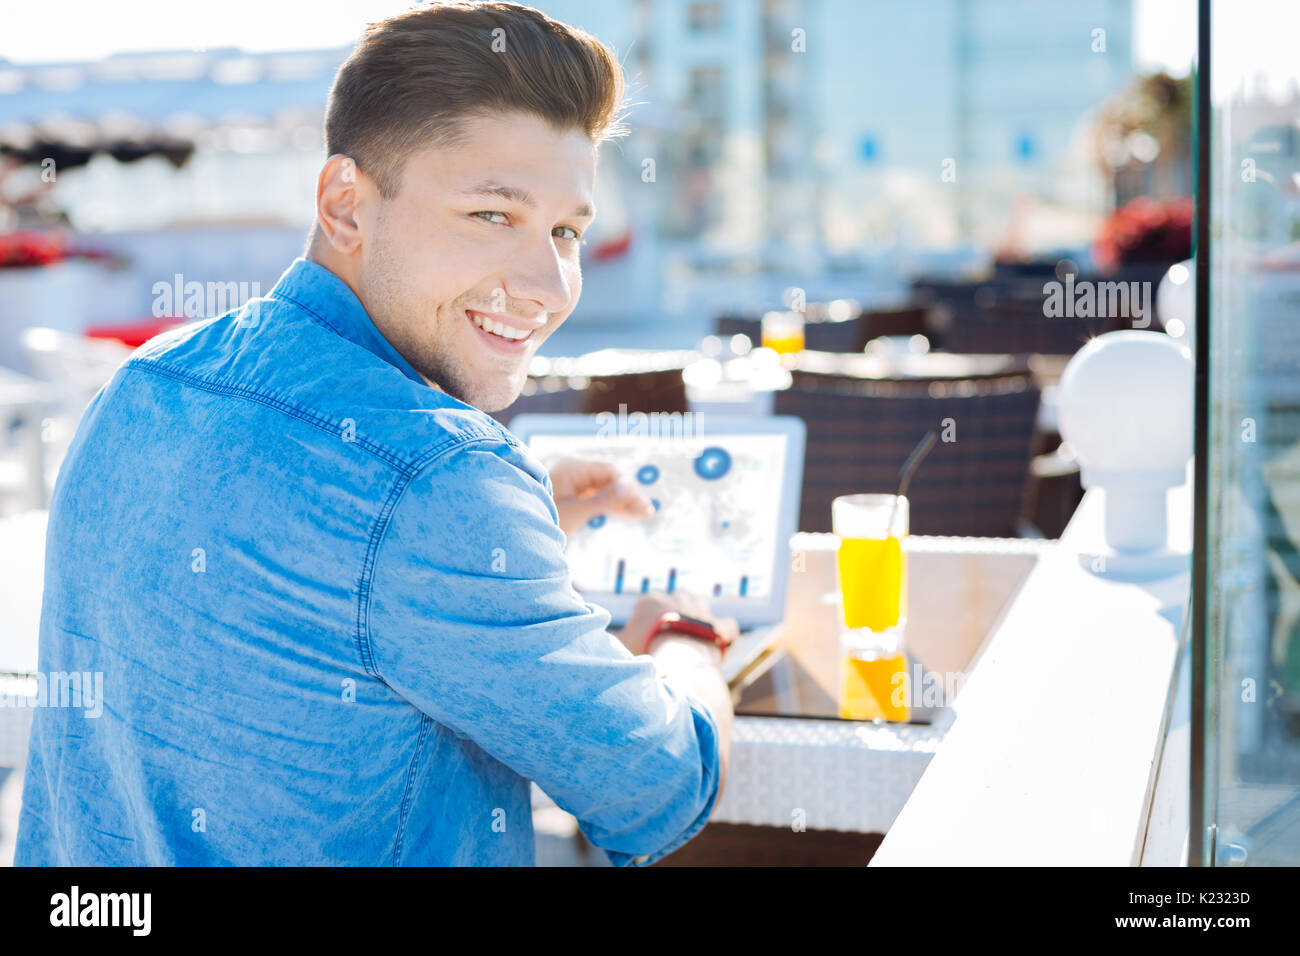 Handsome guy smiling for camera while working outdoors - Stock Image